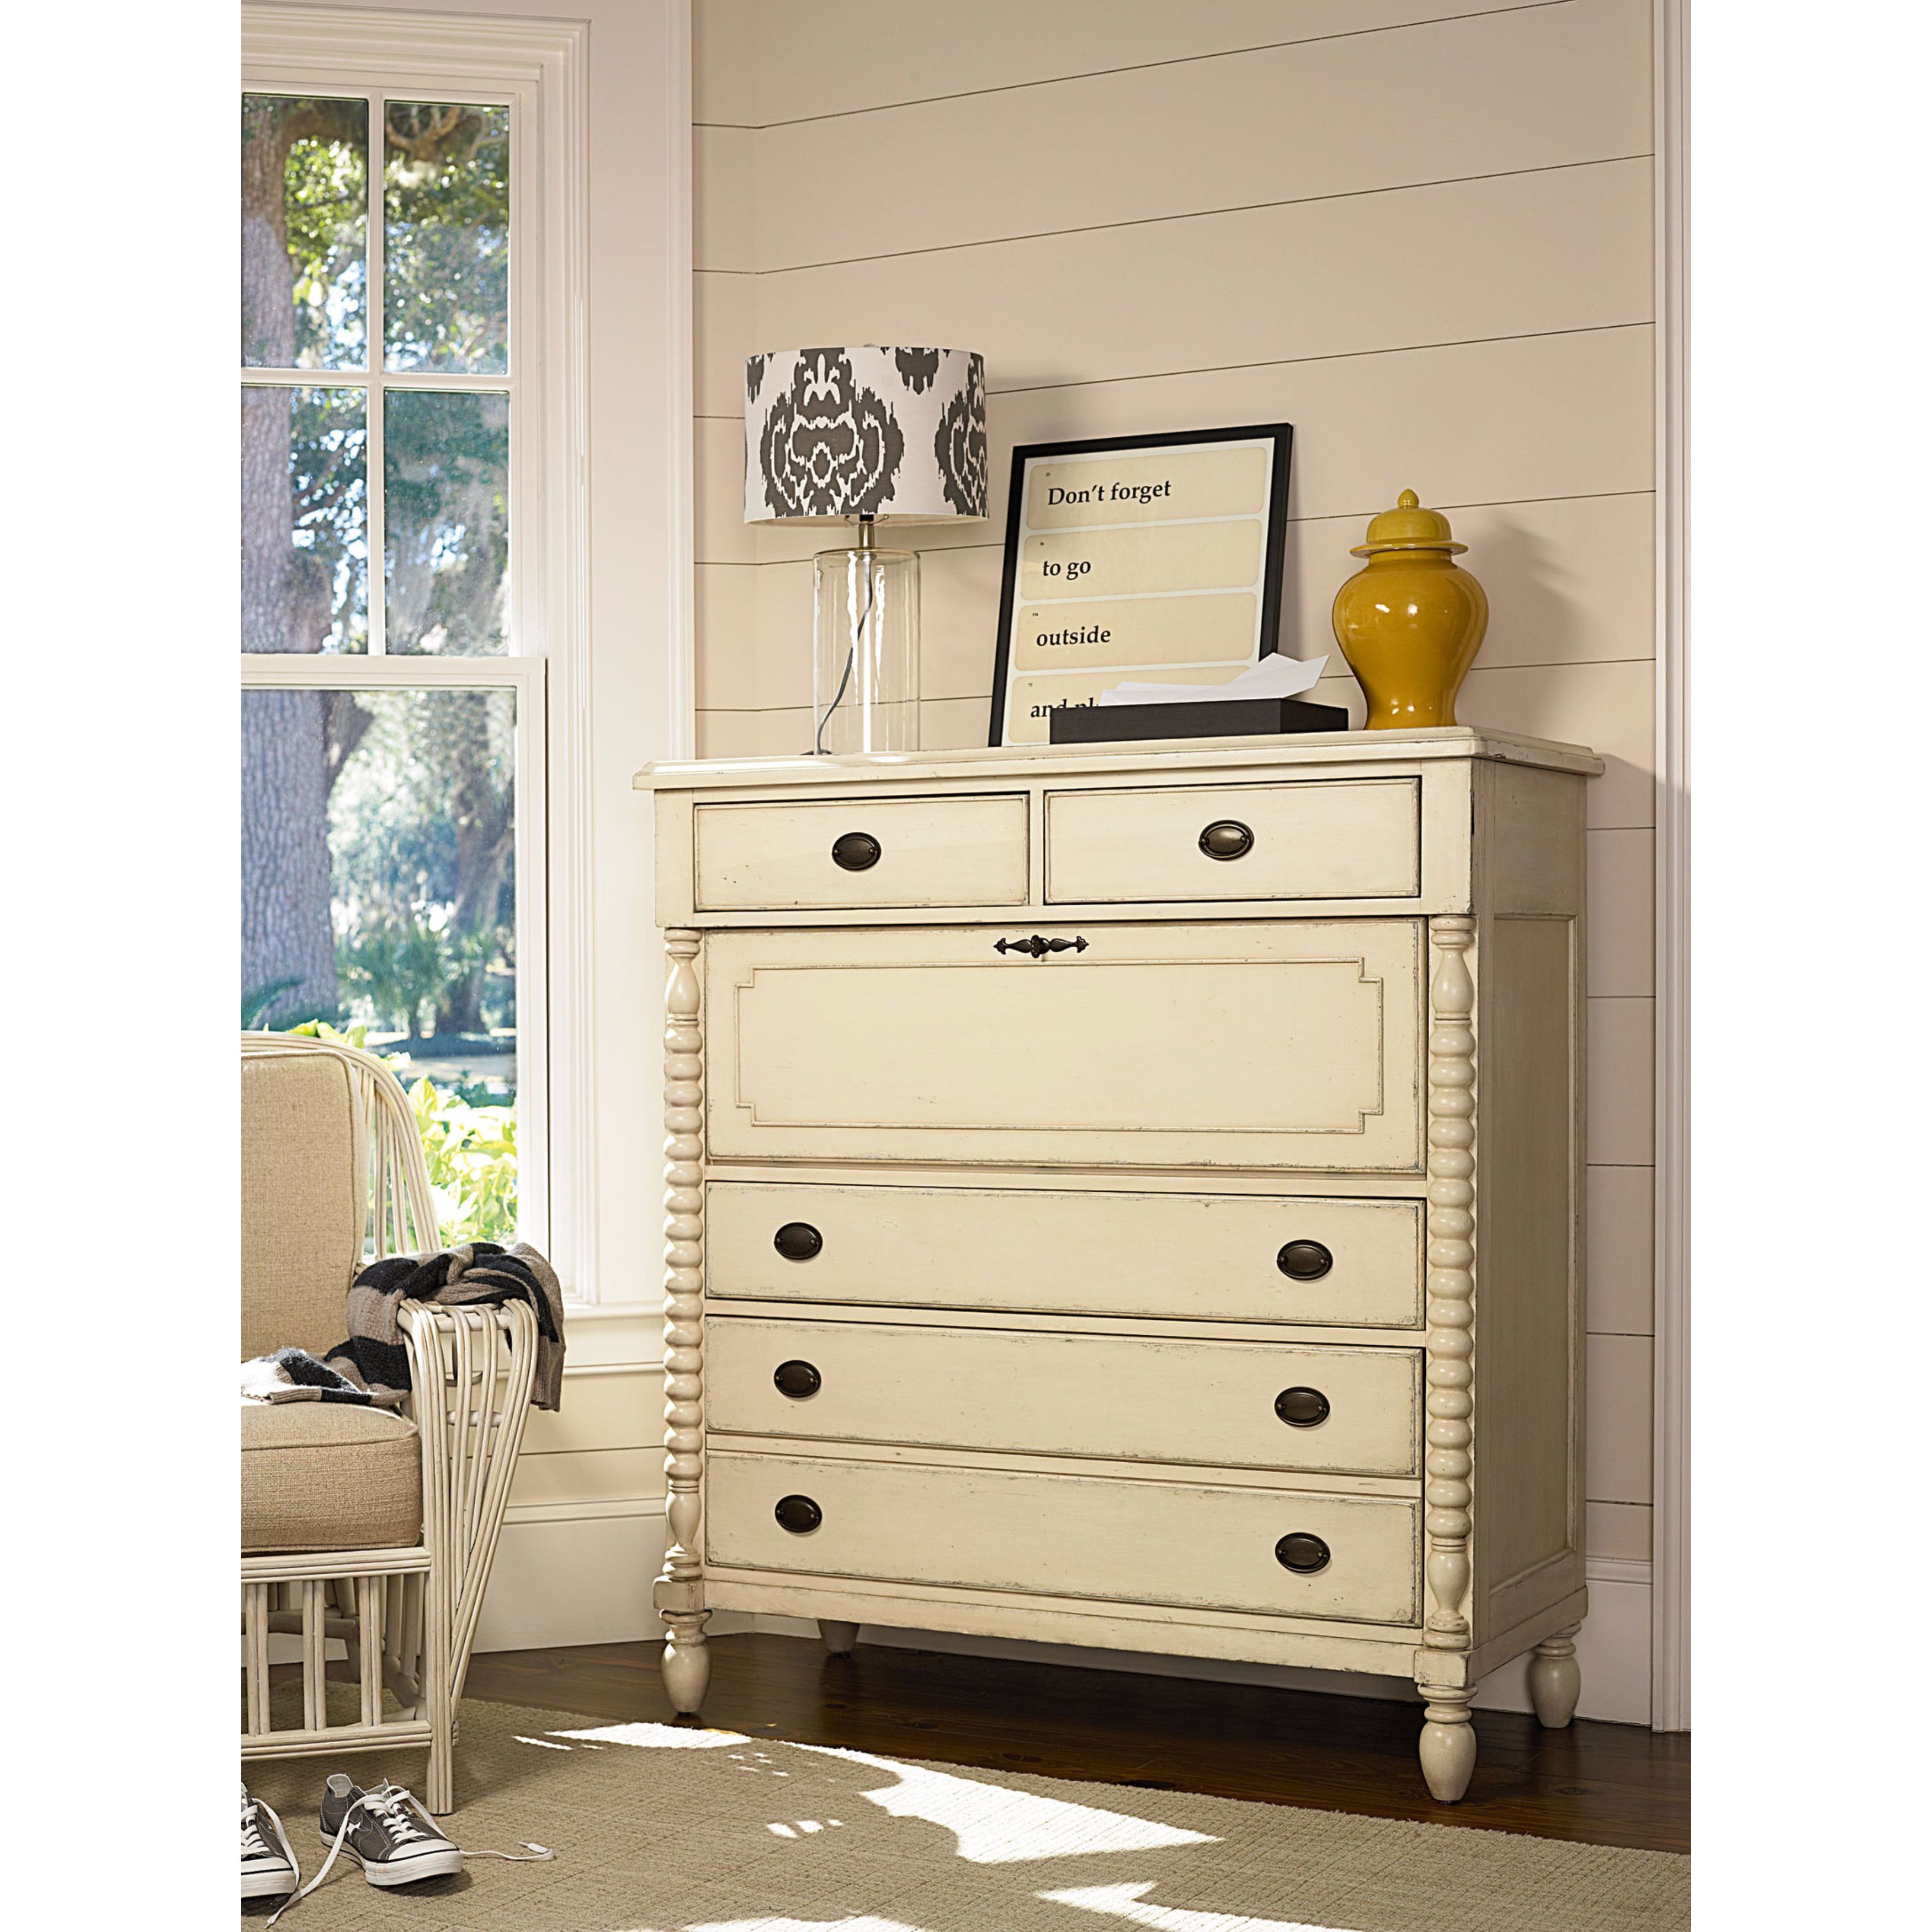 Image of: Shop Black Friday Deals On Paula Deen Home River House Corrie S Dressing Chest Overstock 11623444